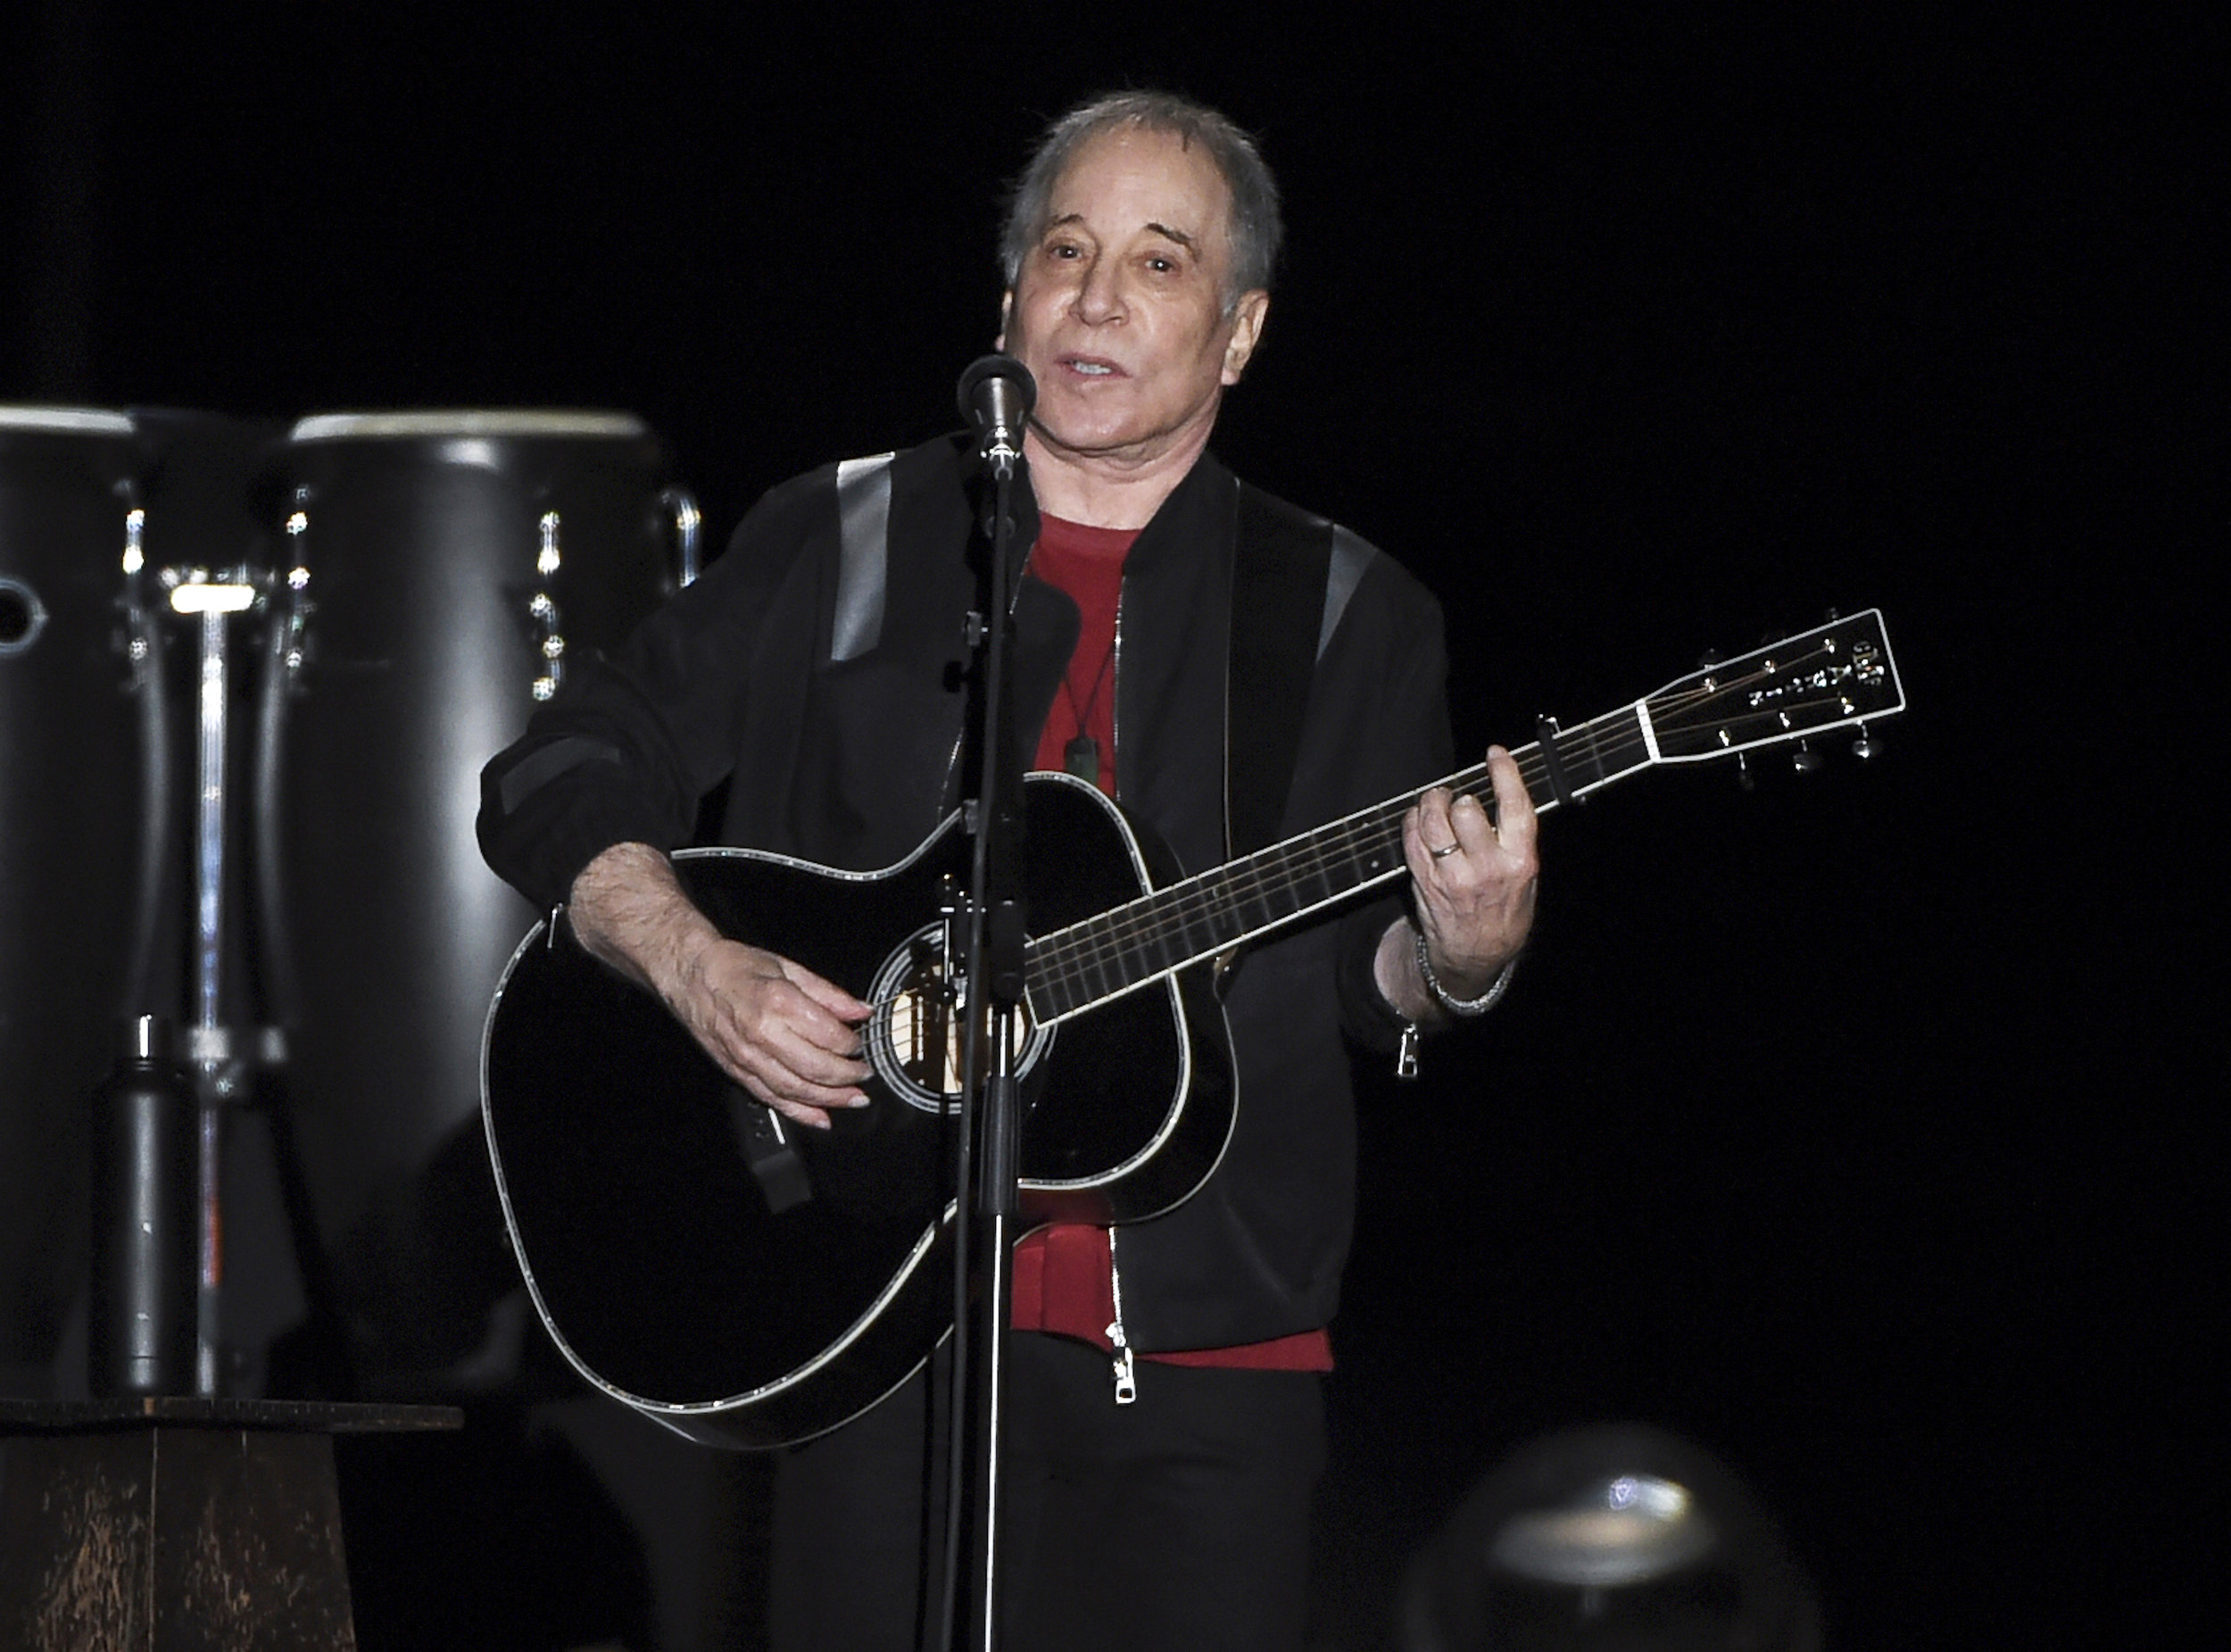 Paul Simon performs at Flushing Meadows Corona Park in September 2018. Photo by Evan Agostini/Invision/AP, File.